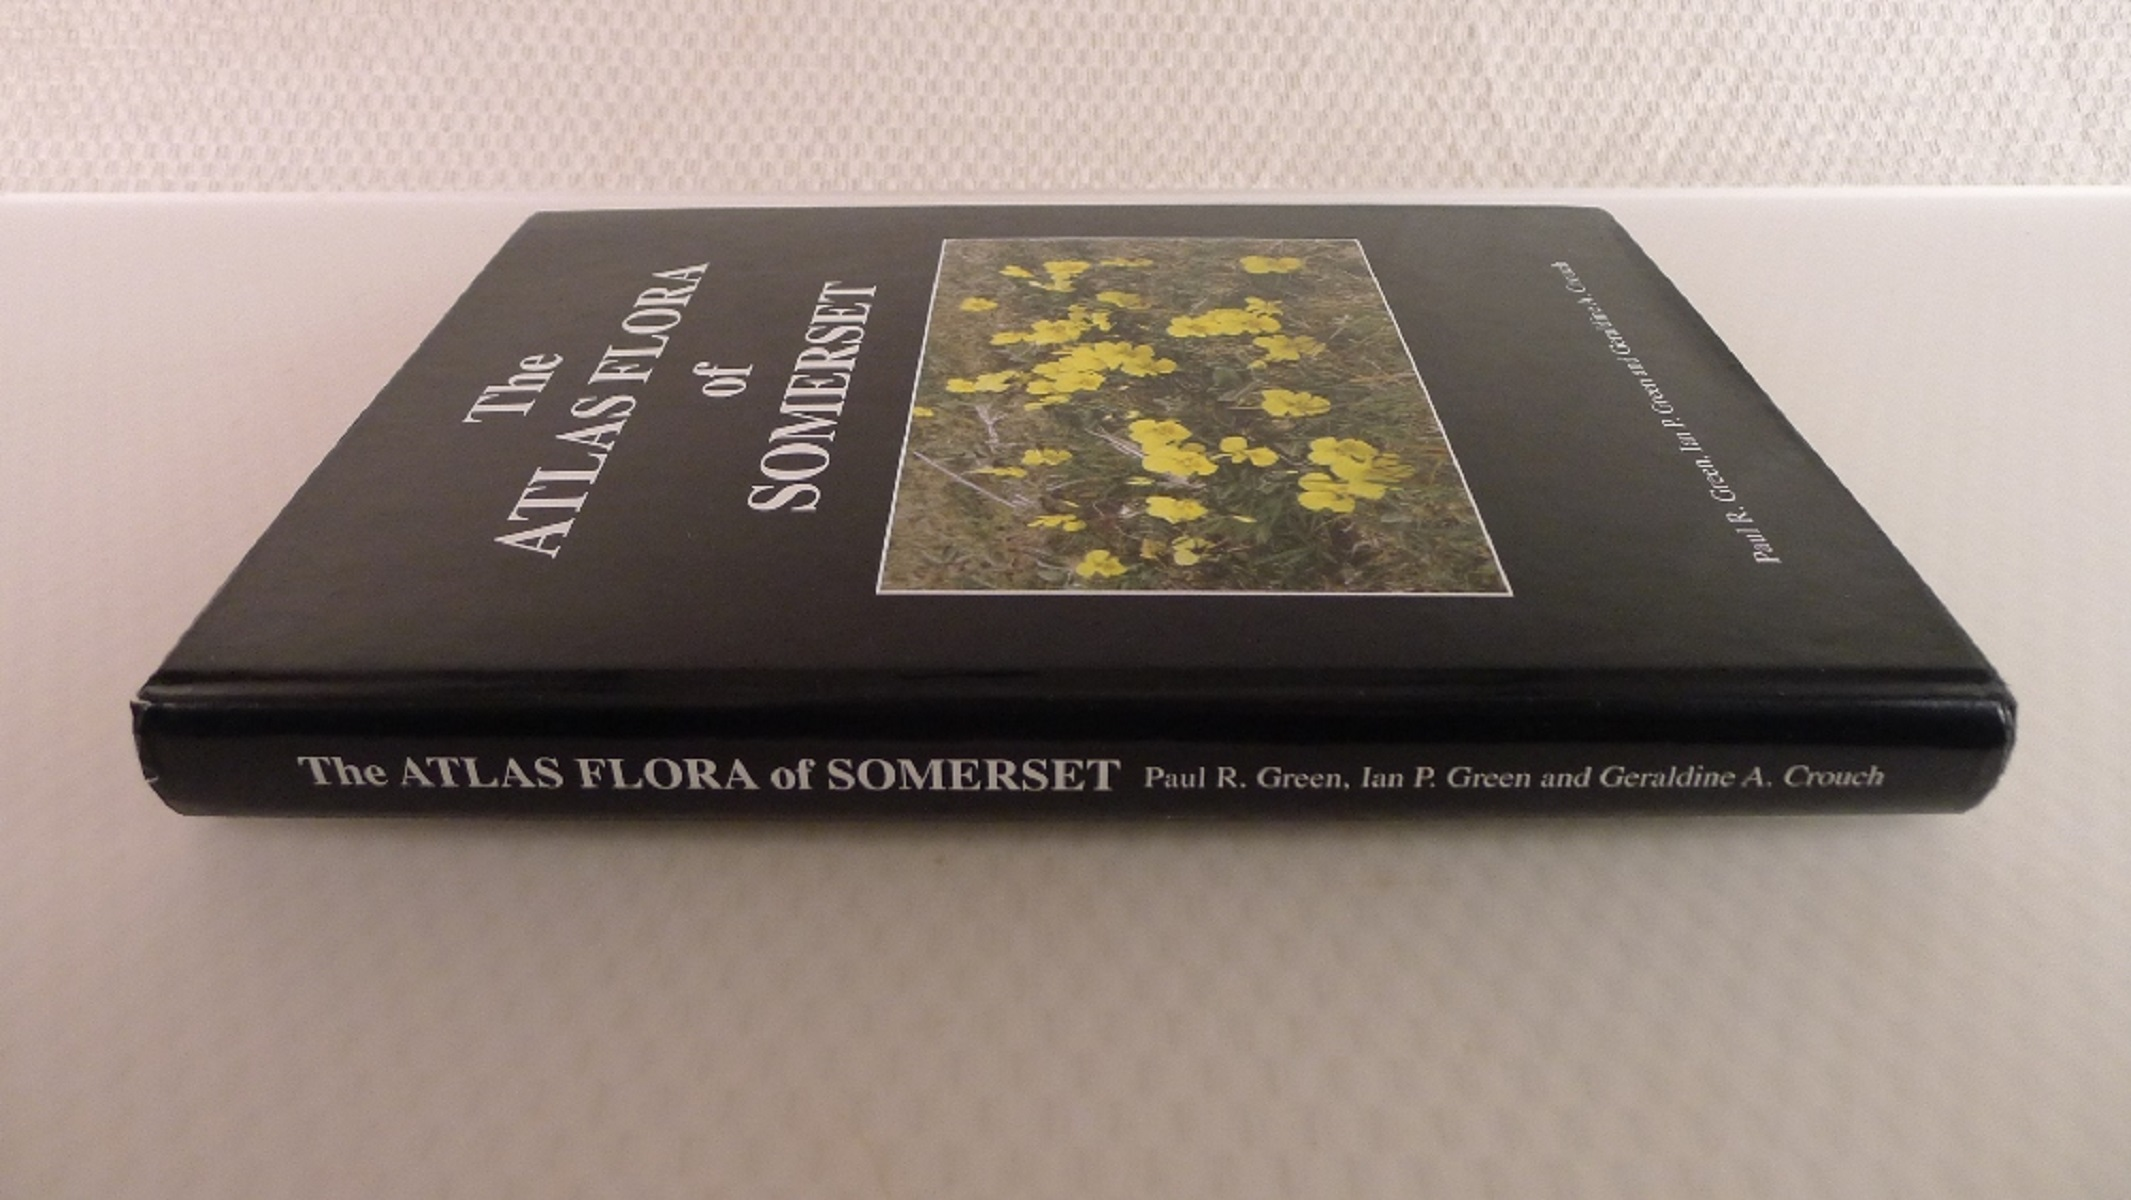 The Atlas Flora of Somerset by Paul R Green, Ian P Green and Geraldine A crouch published - Image 2 of 6